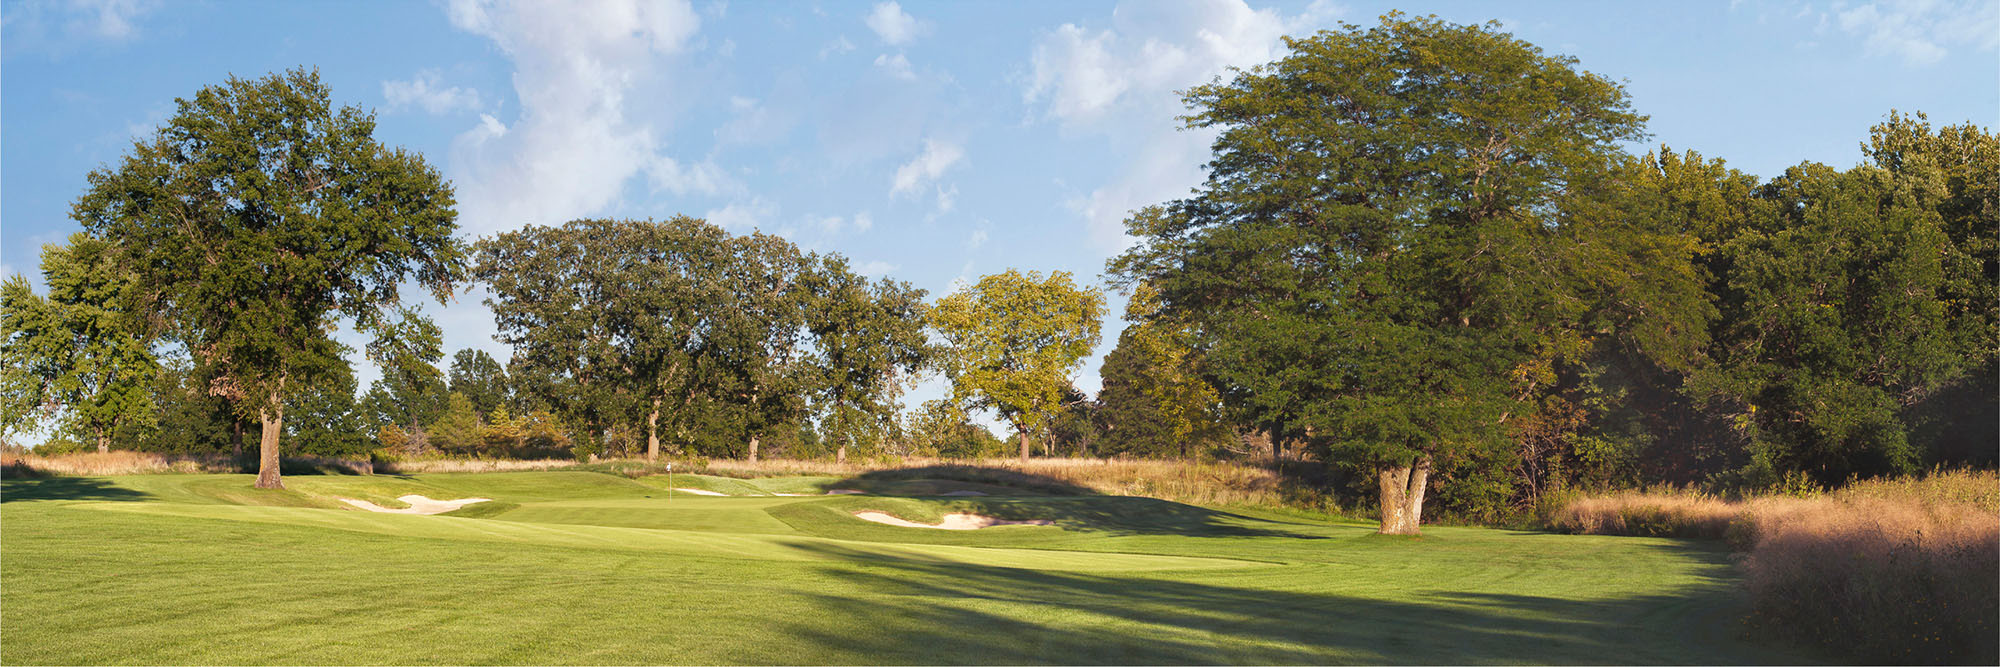 Golf Course Image - Wolf Creek No. 2